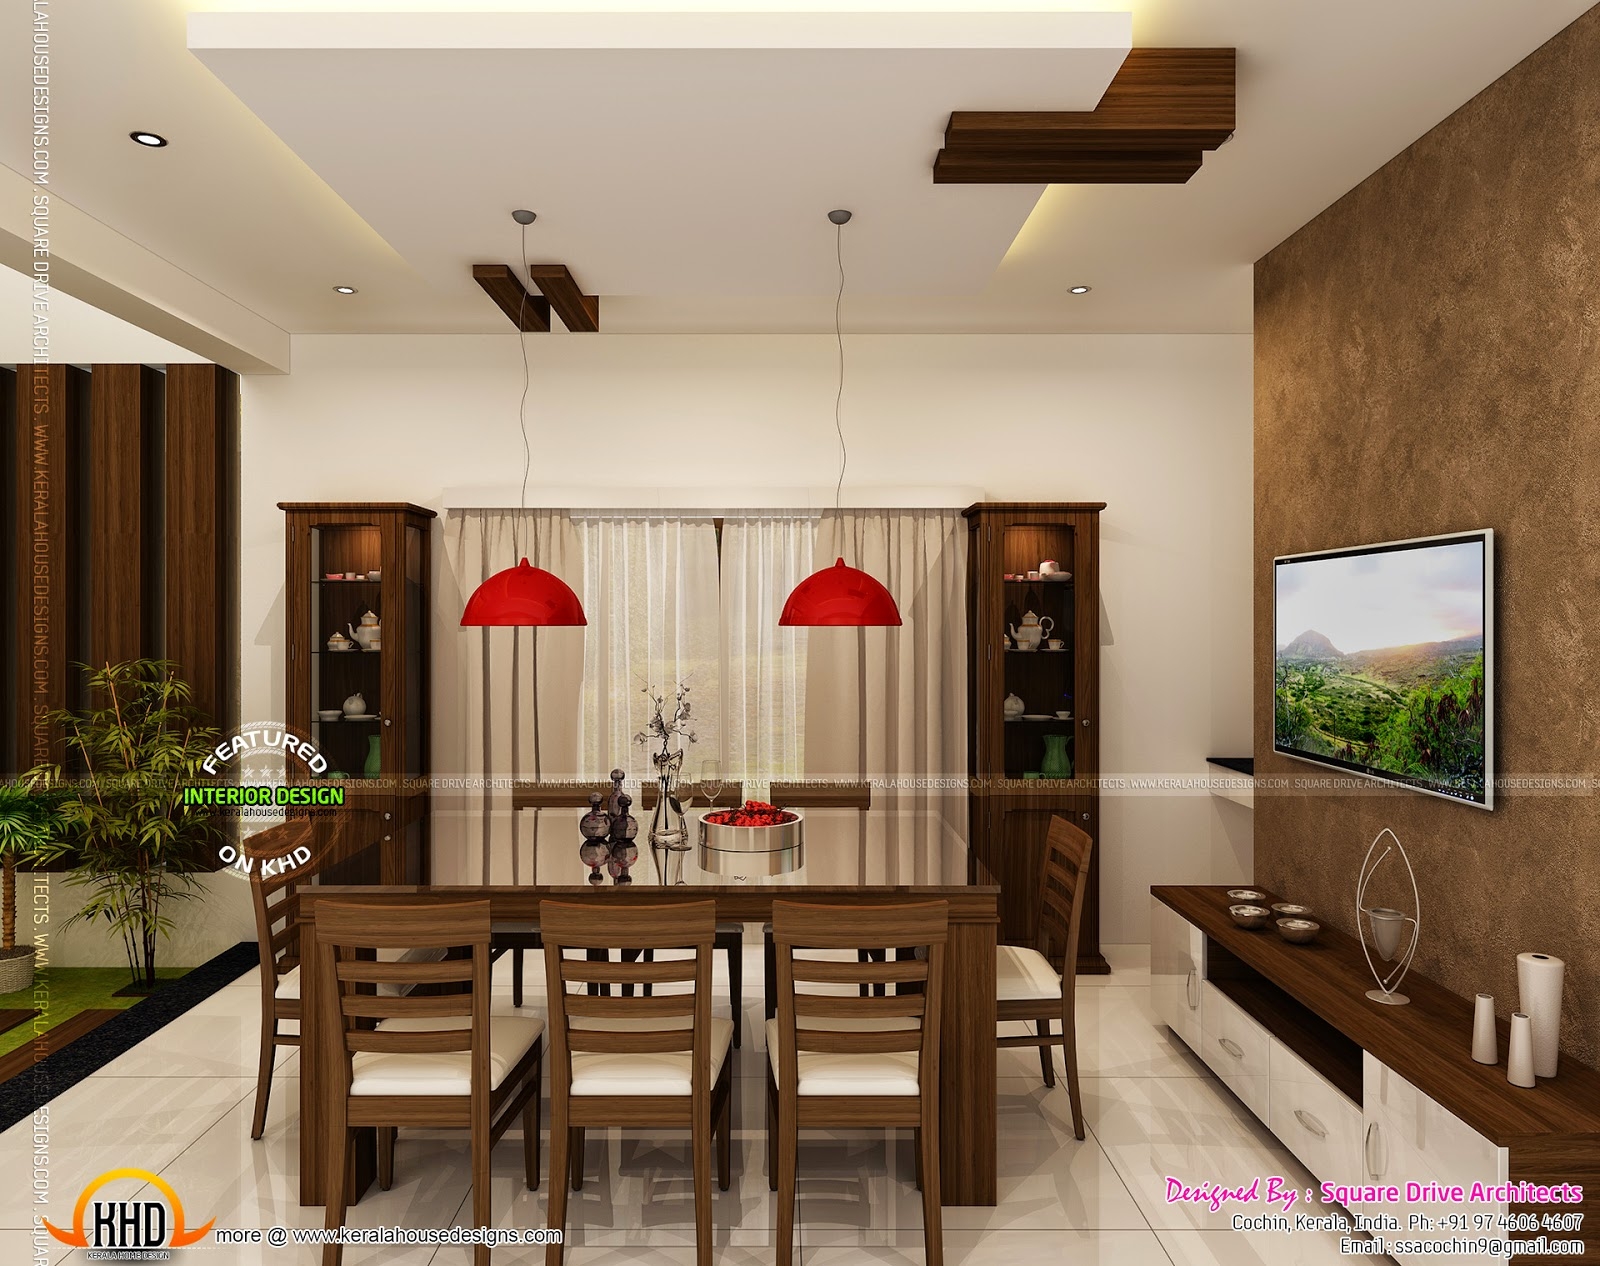 Home interiors designs kerala home design and floor plans - Home interior designs ...